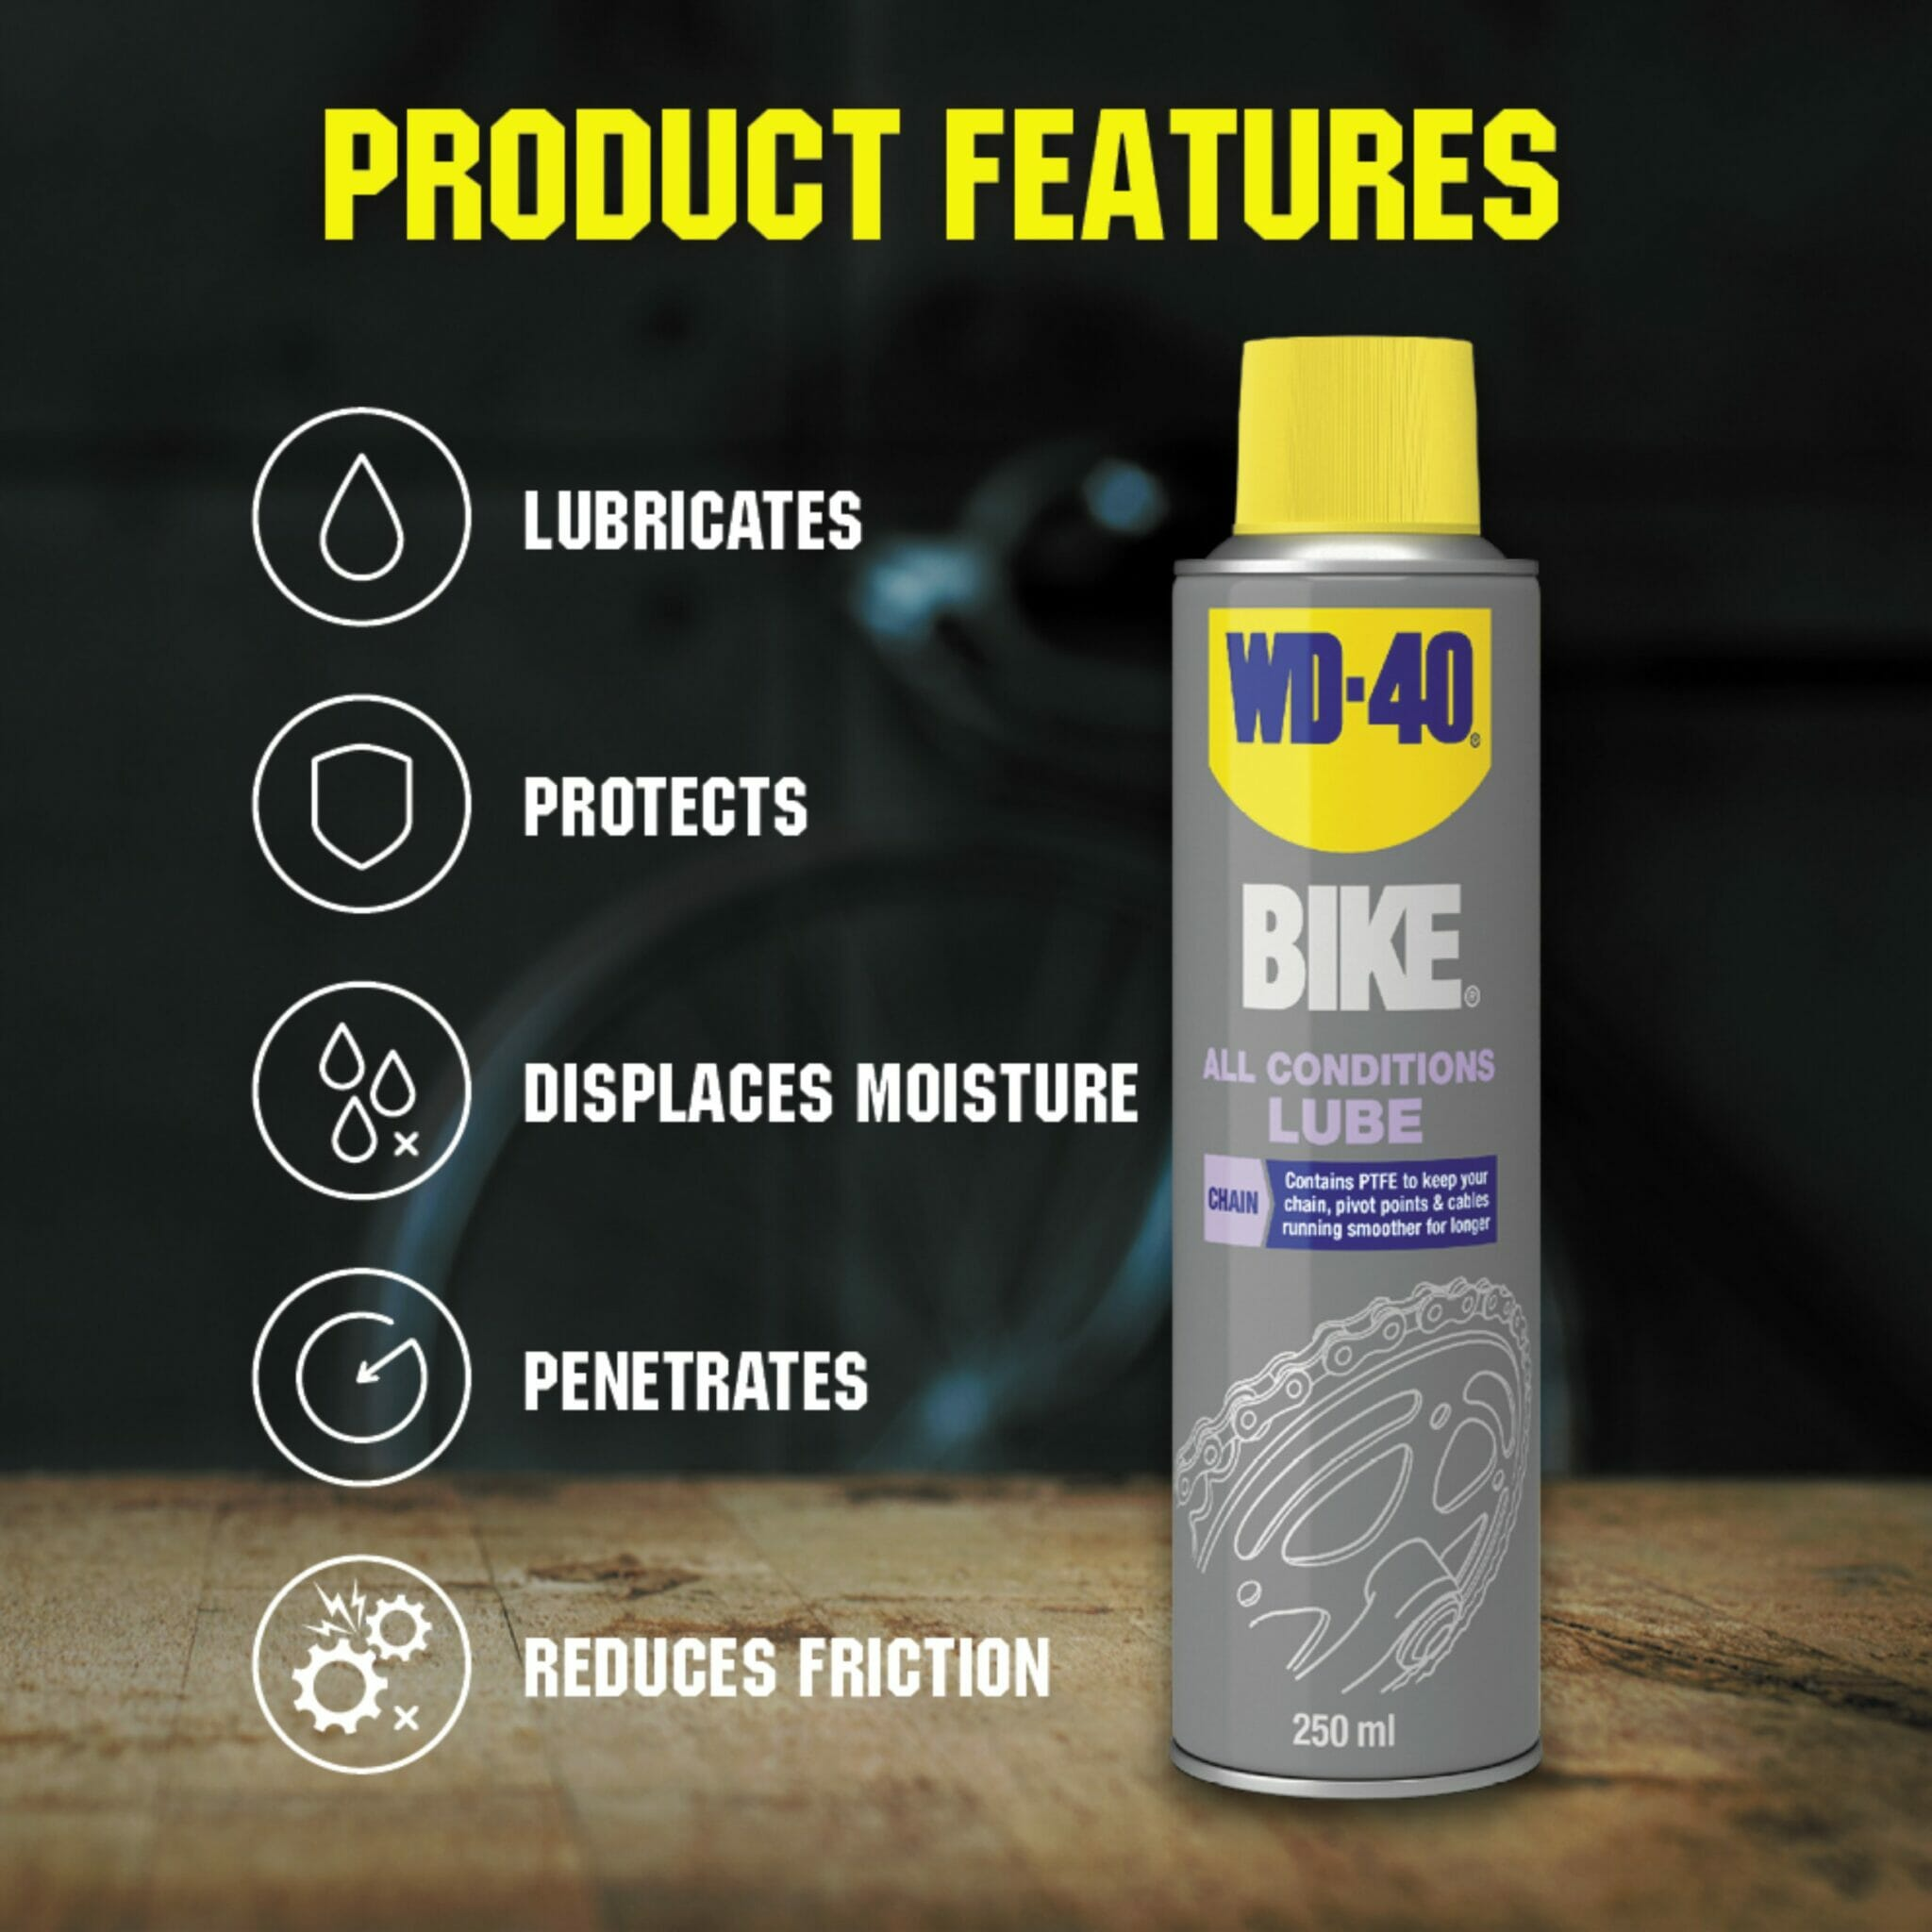 uk wd40 bike all conditions lube 250ml product features lifestyle background